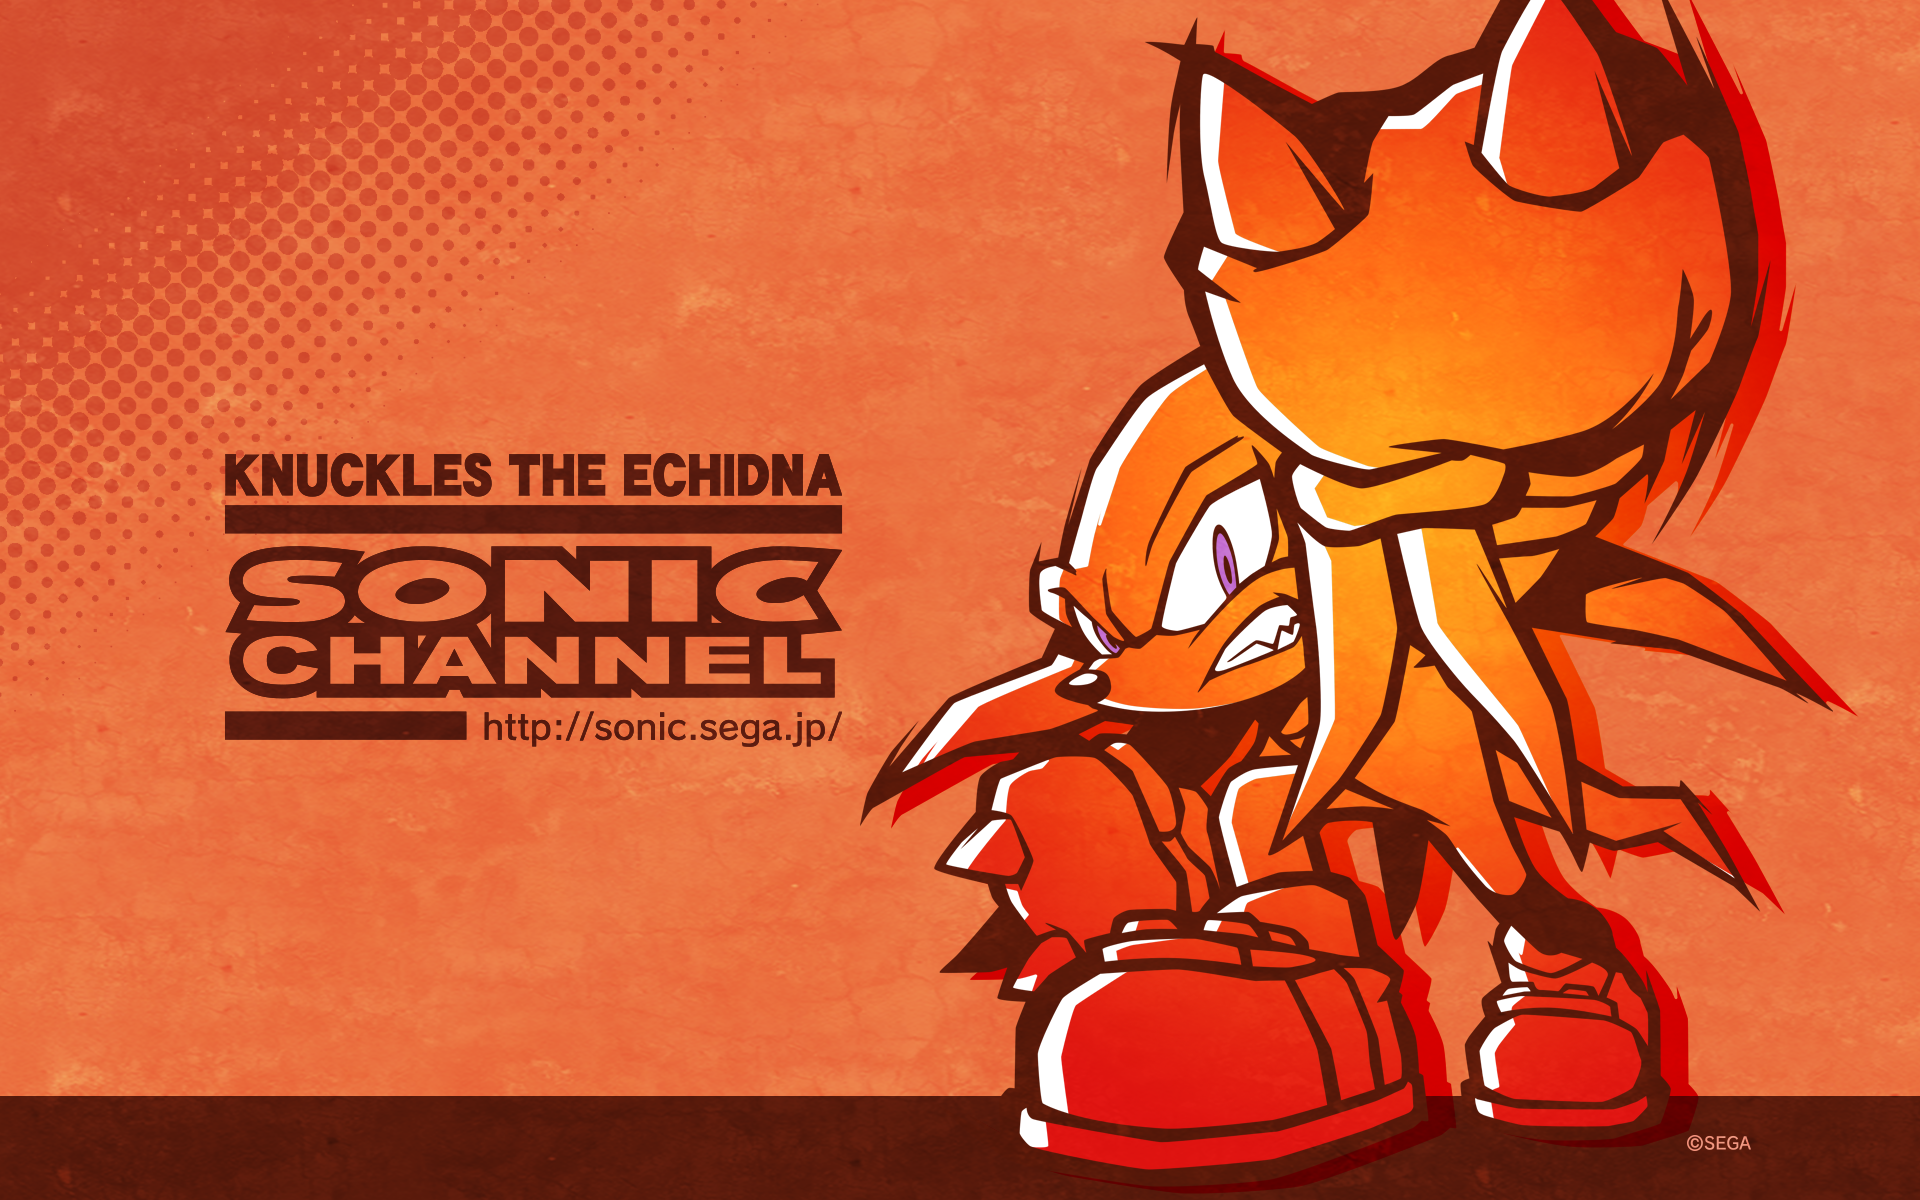 http://sonic.sega.jp/SonicChannel/enjoy/image/wallpaper_173l_knuckles_14_pc.png